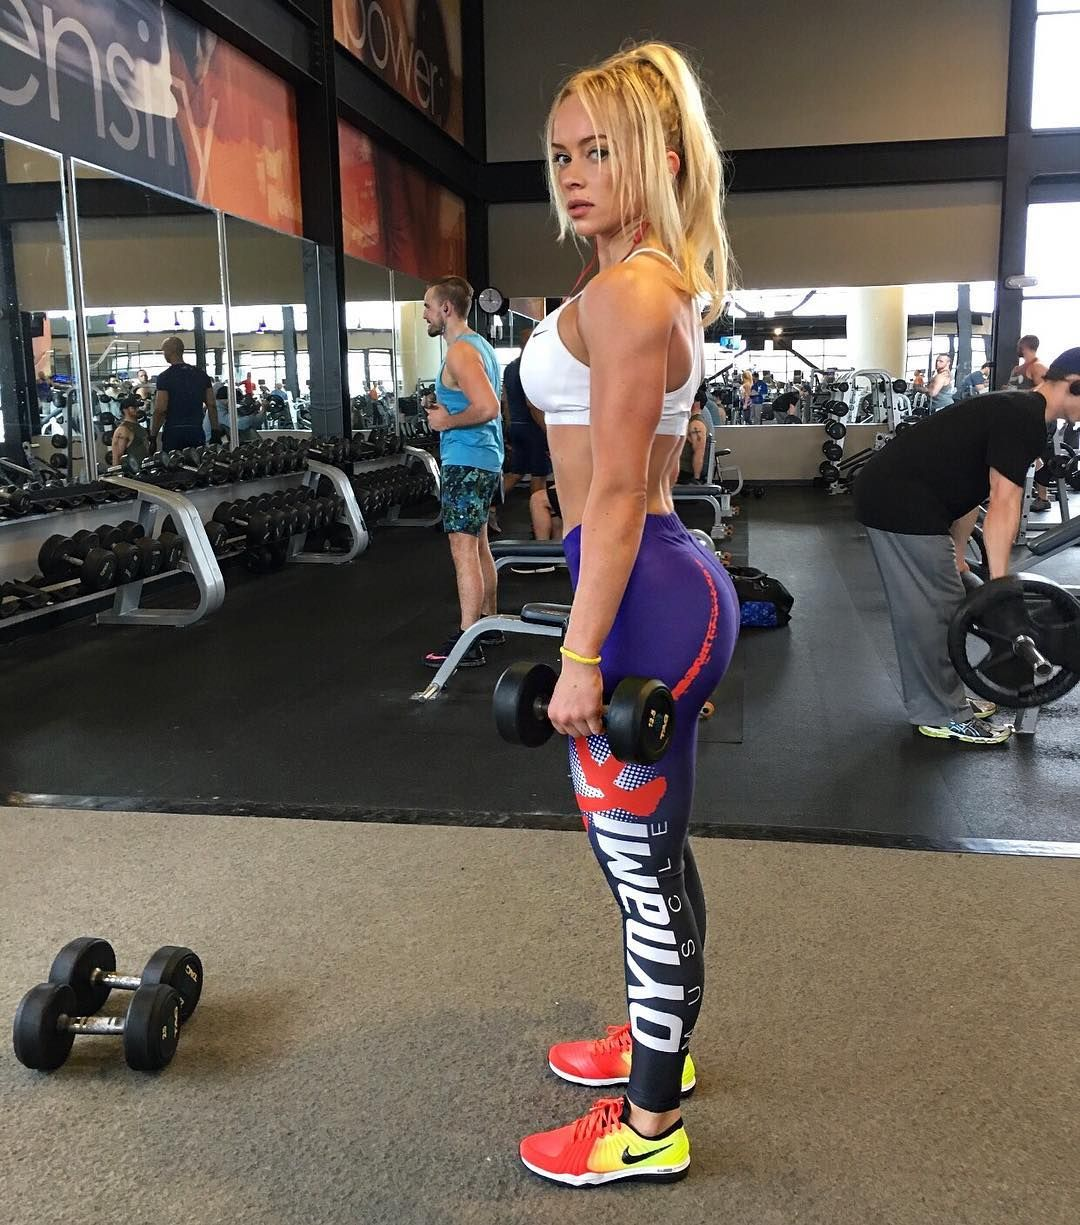 WIOLETTA PAWLUK | Gym, Fitness models, Gym crush